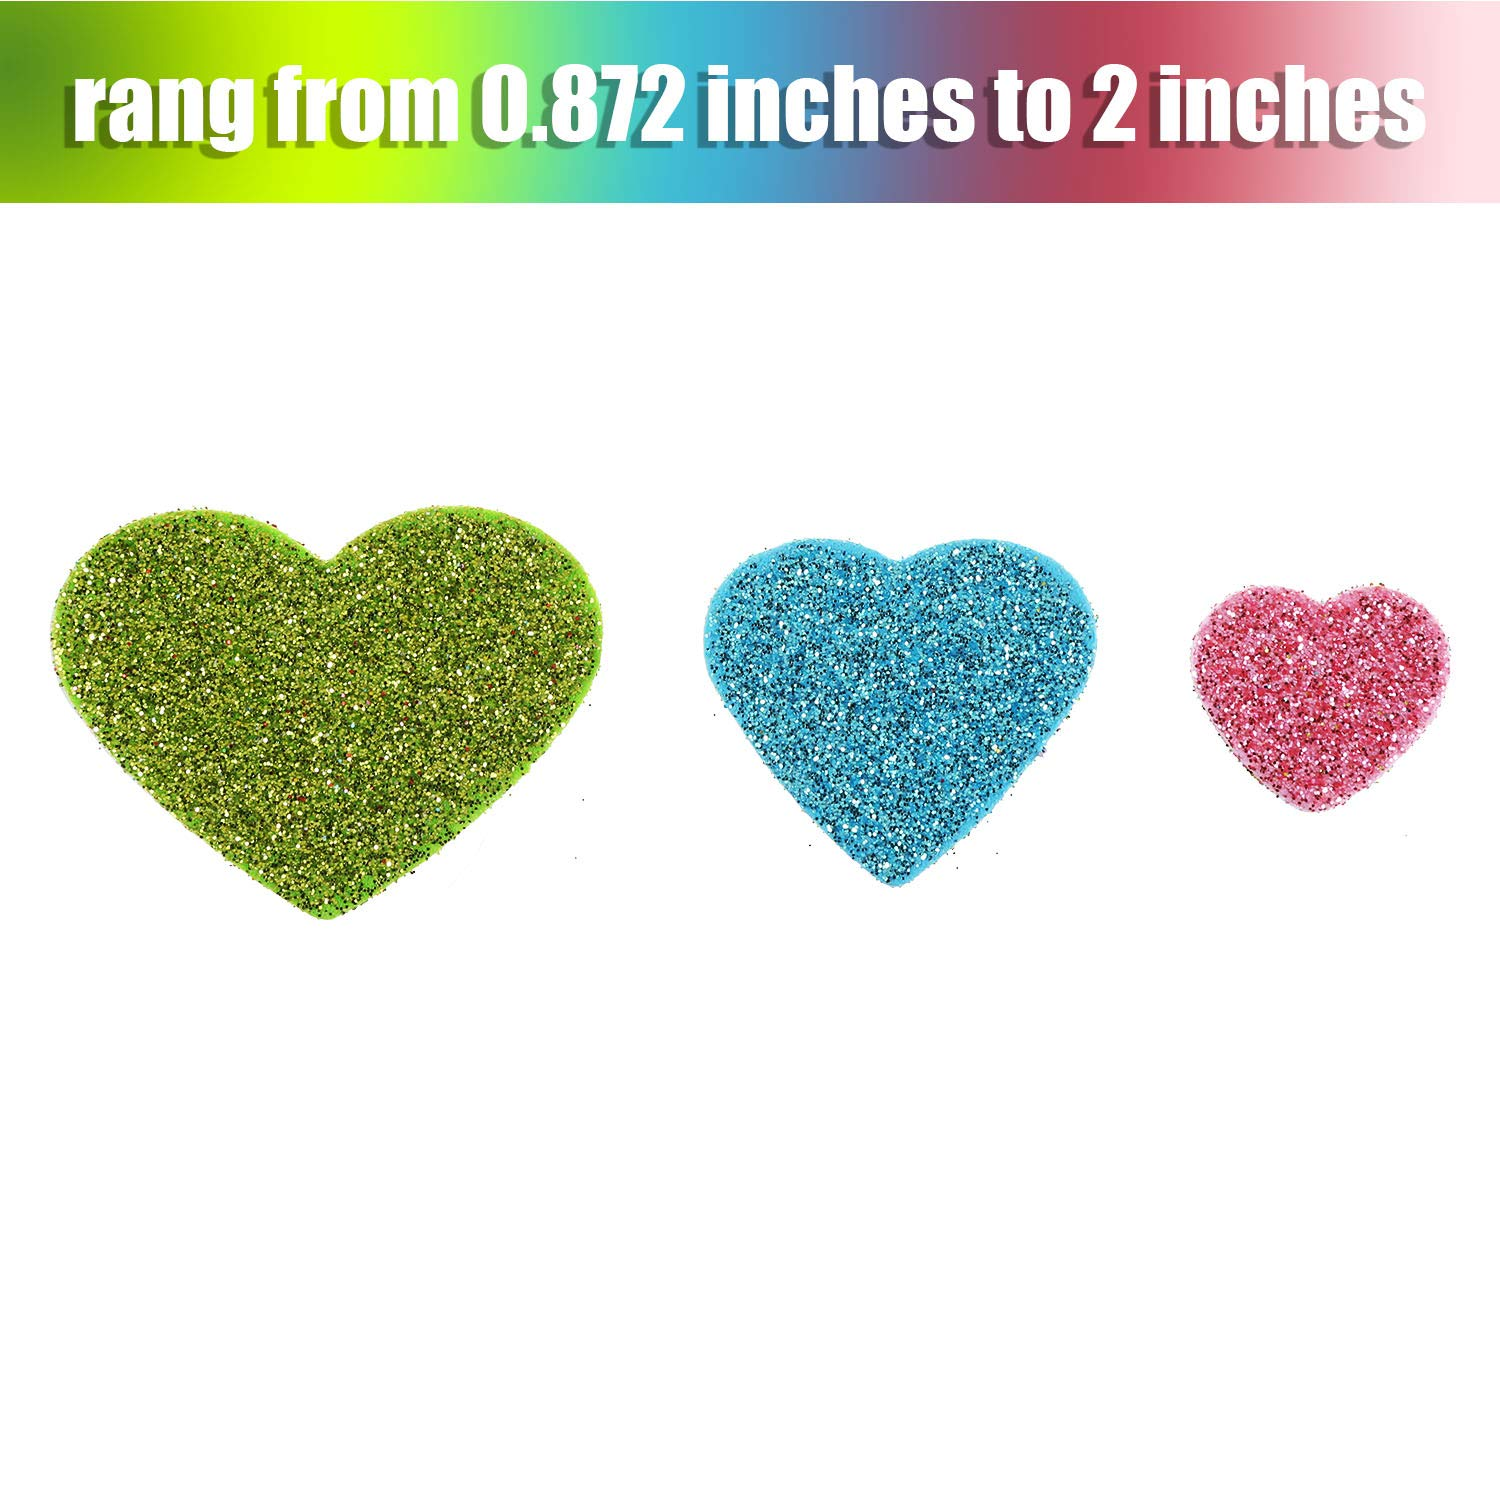 200 Zhehao Glitter Heart Shape Stickers Foam Stickers Colorful Self-Adhesive Decals for Valentines Day Wedding Supplies Assorted Sizes